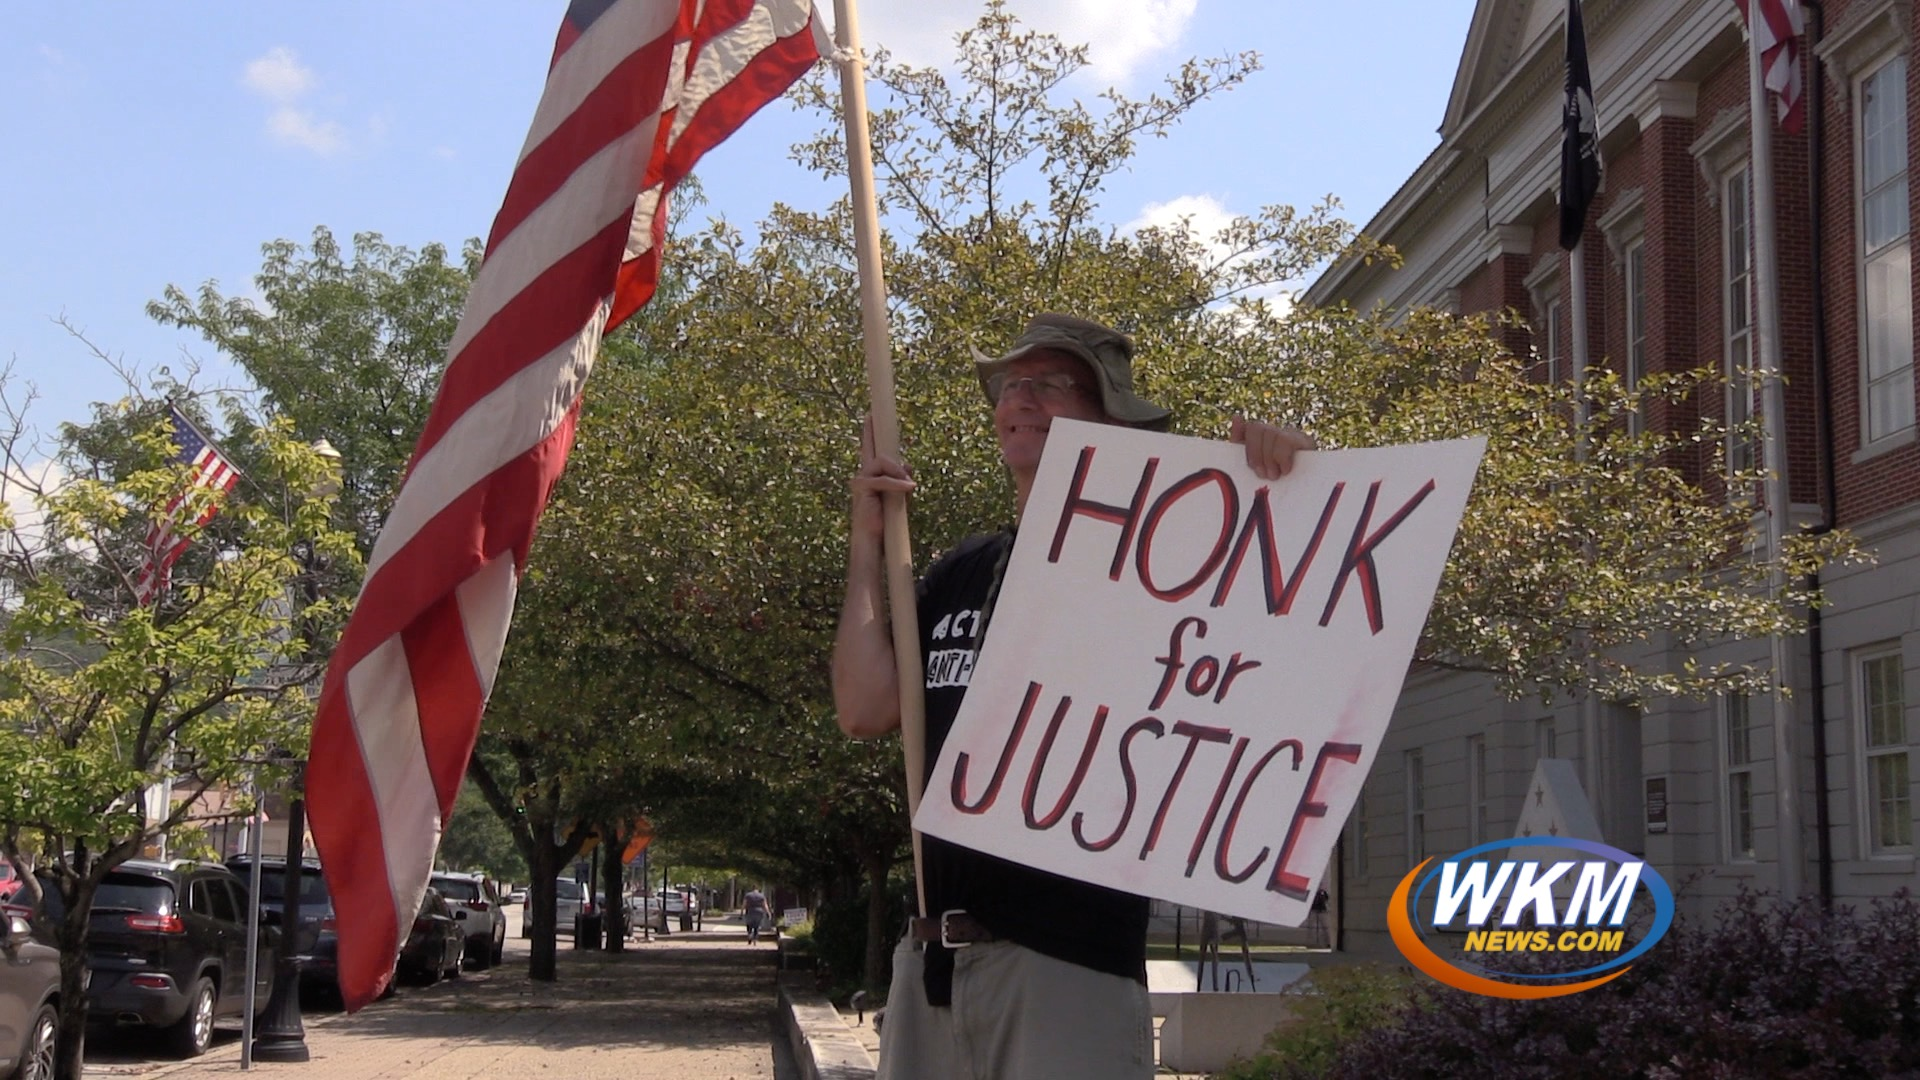 Local Activists Hold Weekly Peaceful Protest at Courthouse